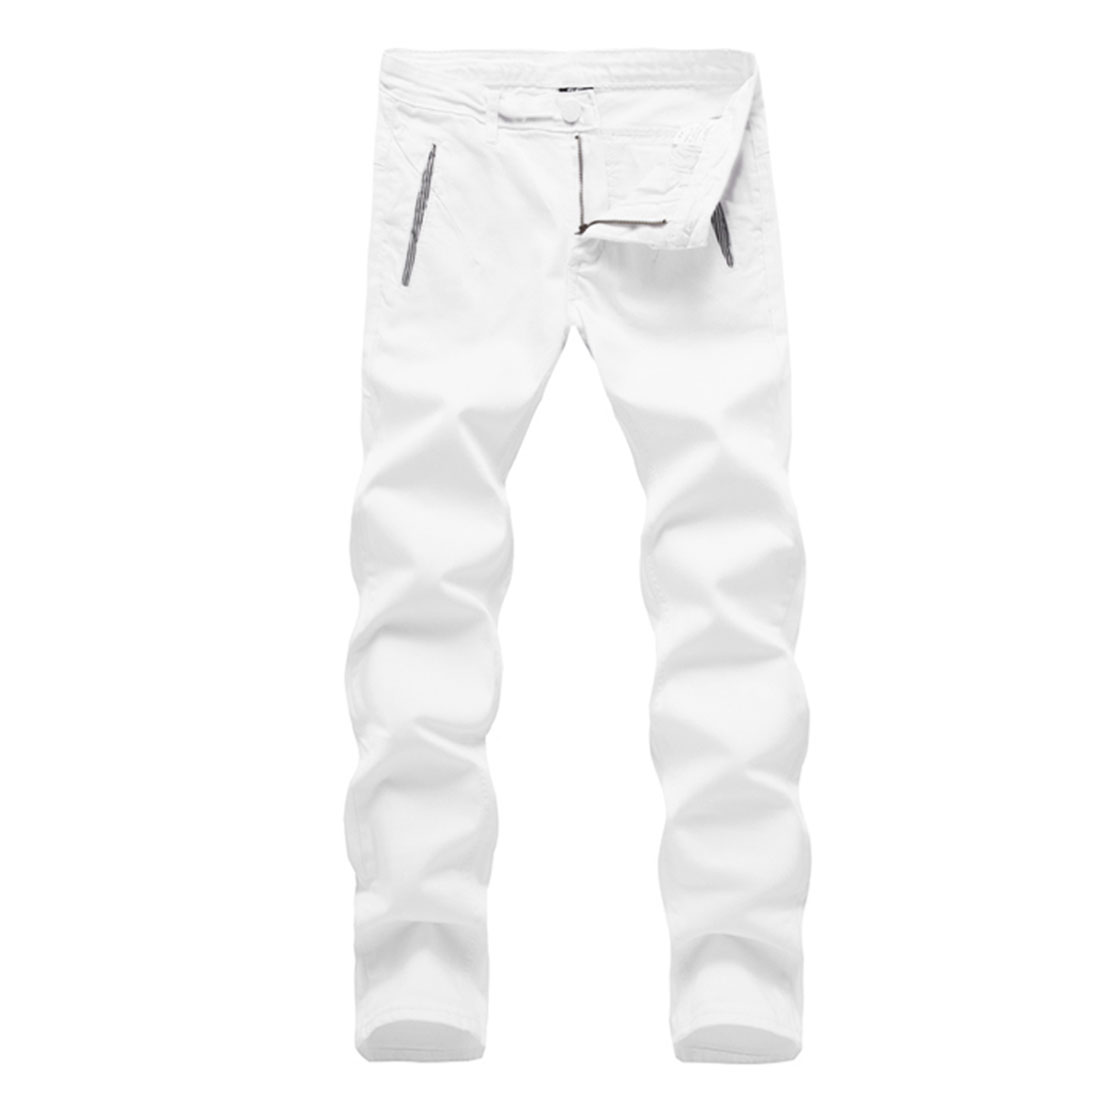 White W30 Zipper Fly Button Closure Slim Fit Style Men Pants Trousers